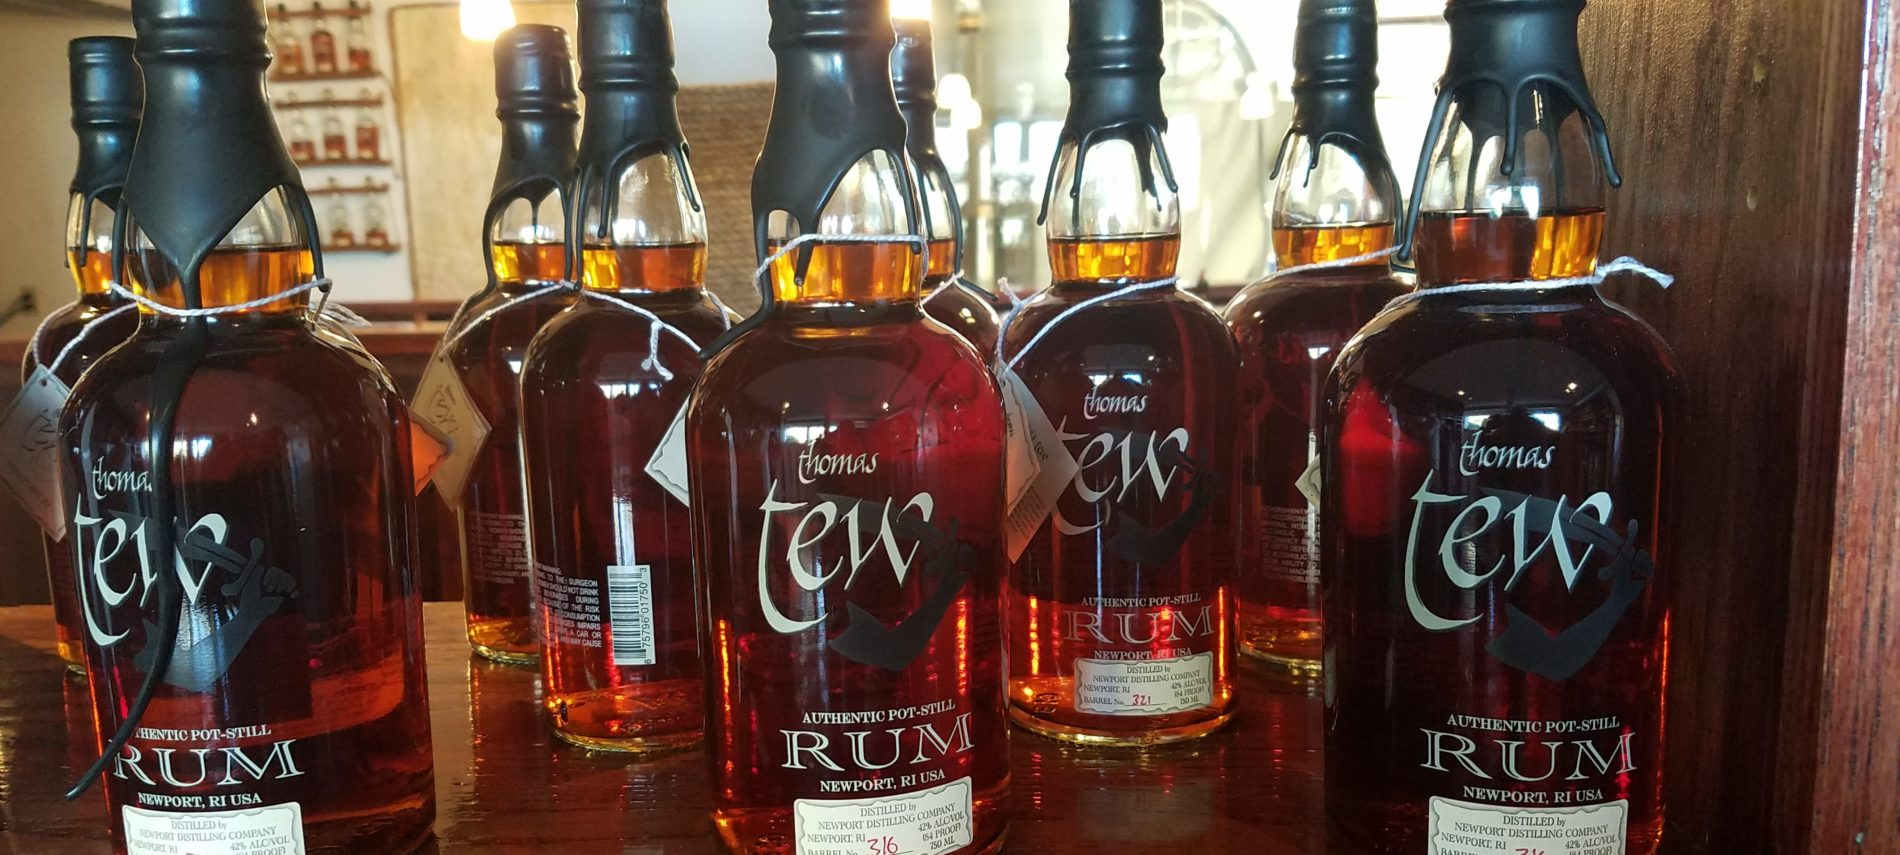 Thomas Tew Rum, distilled in Newport, RI